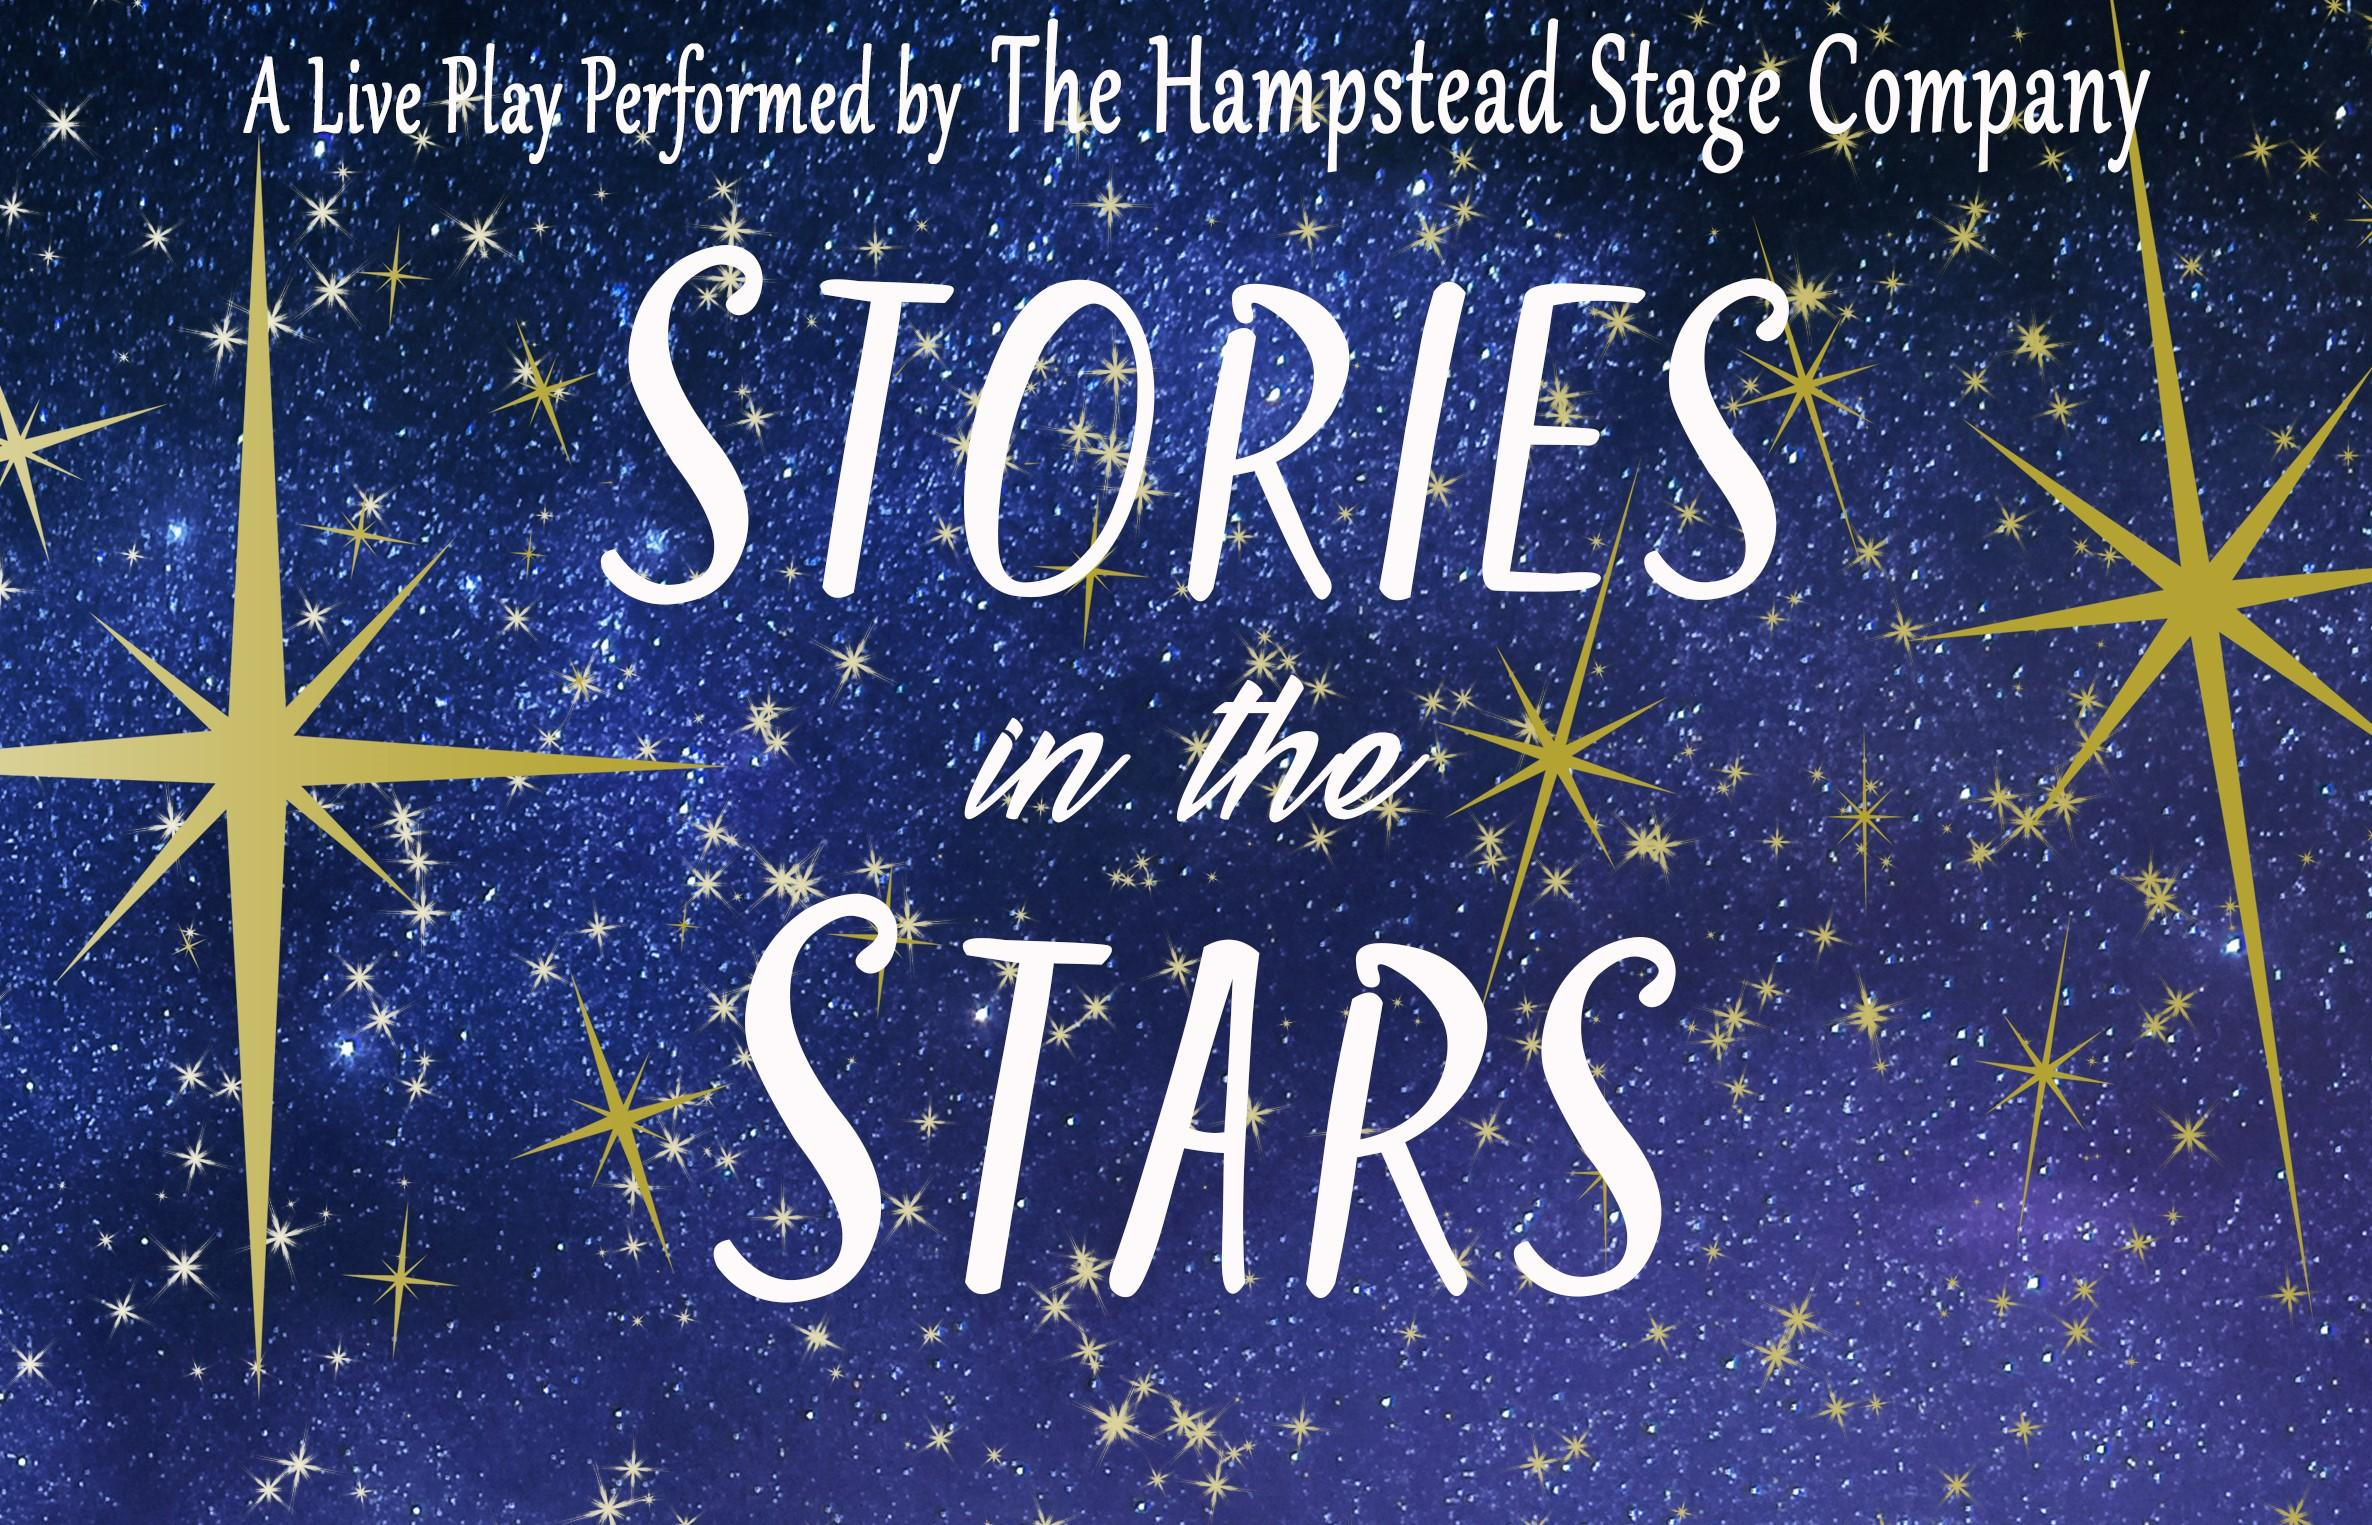 Blue background with yellow stars, text reads Play performed by the Hampstead Stage Company: Stories in the Stars